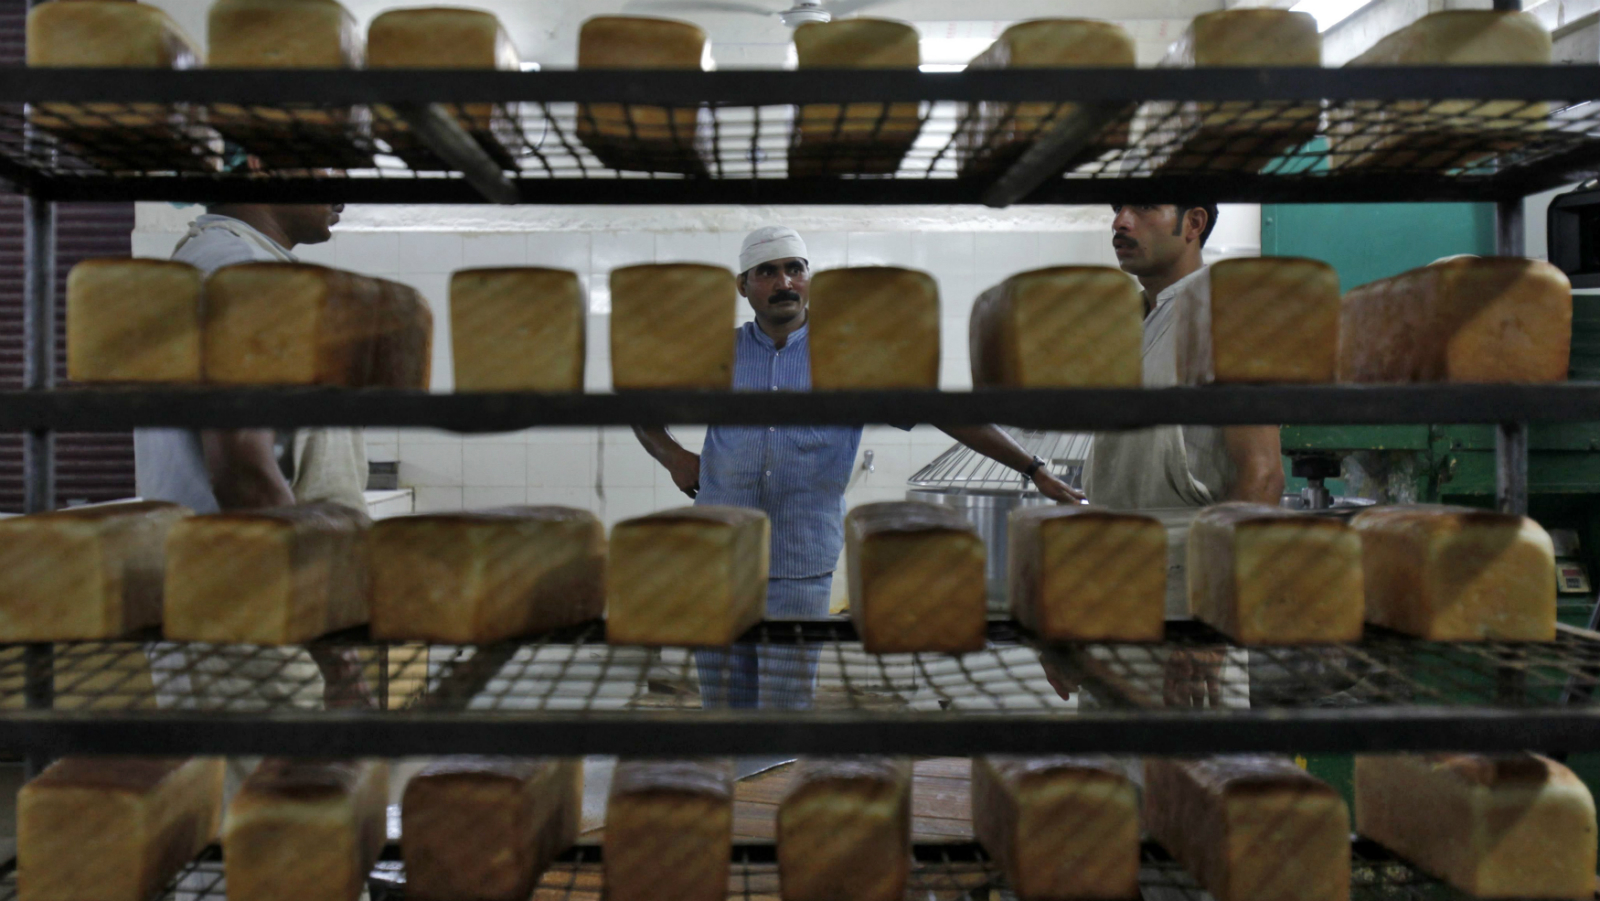 Inmates stand behind stacked bread at a bakery inside the Tihar Jail complex in New Delhi May 11, 2011. South Asia's largest prison - the Tihar Jail complex in New Delhi - is helping transform the lives of its inmates through vocational training in diverse fields to prepare them for a fresh start once they are released. A variety of goods ranging from crispy potato chips and crunchy cookies, to formal shirts, school desks, and herbal products are sold under the TJ'S (Tihar Jail) brand, to generate awareness about the positive activities happening inside the prison walls. Picture taken May 11, 2011.